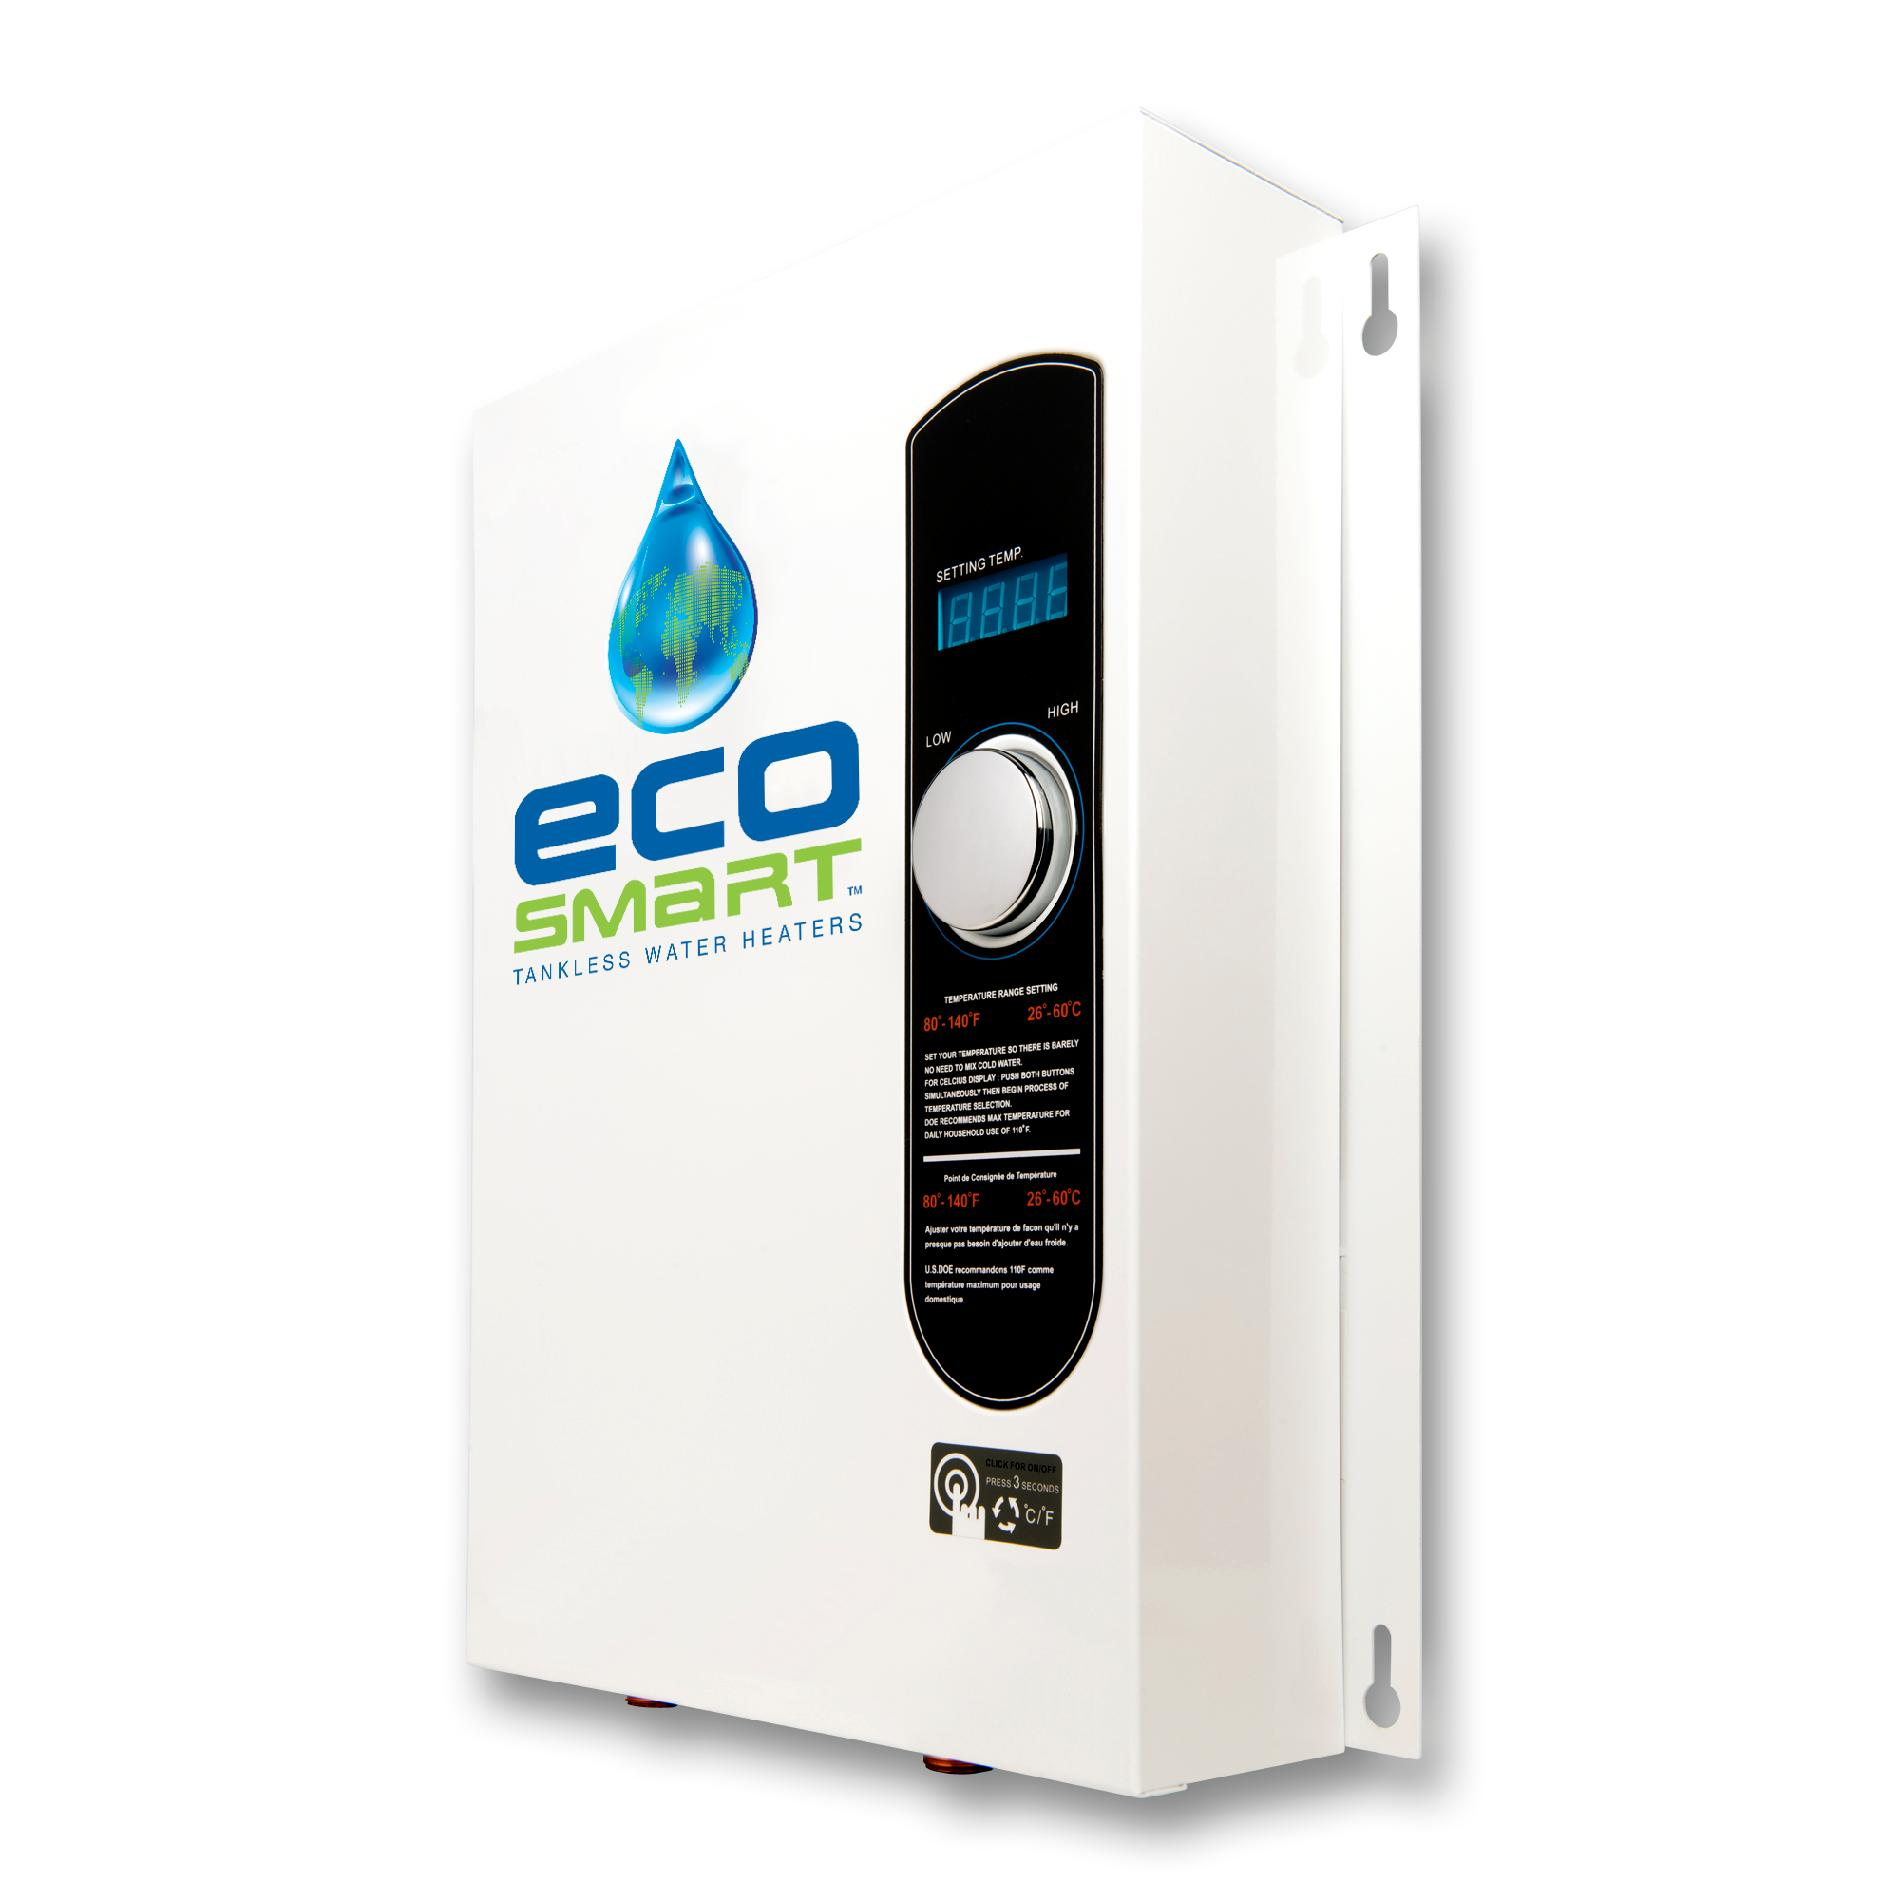 EcoSmart Self Modulating ECO 18 Tankless Water Heater with Patented Self Modulating Technology